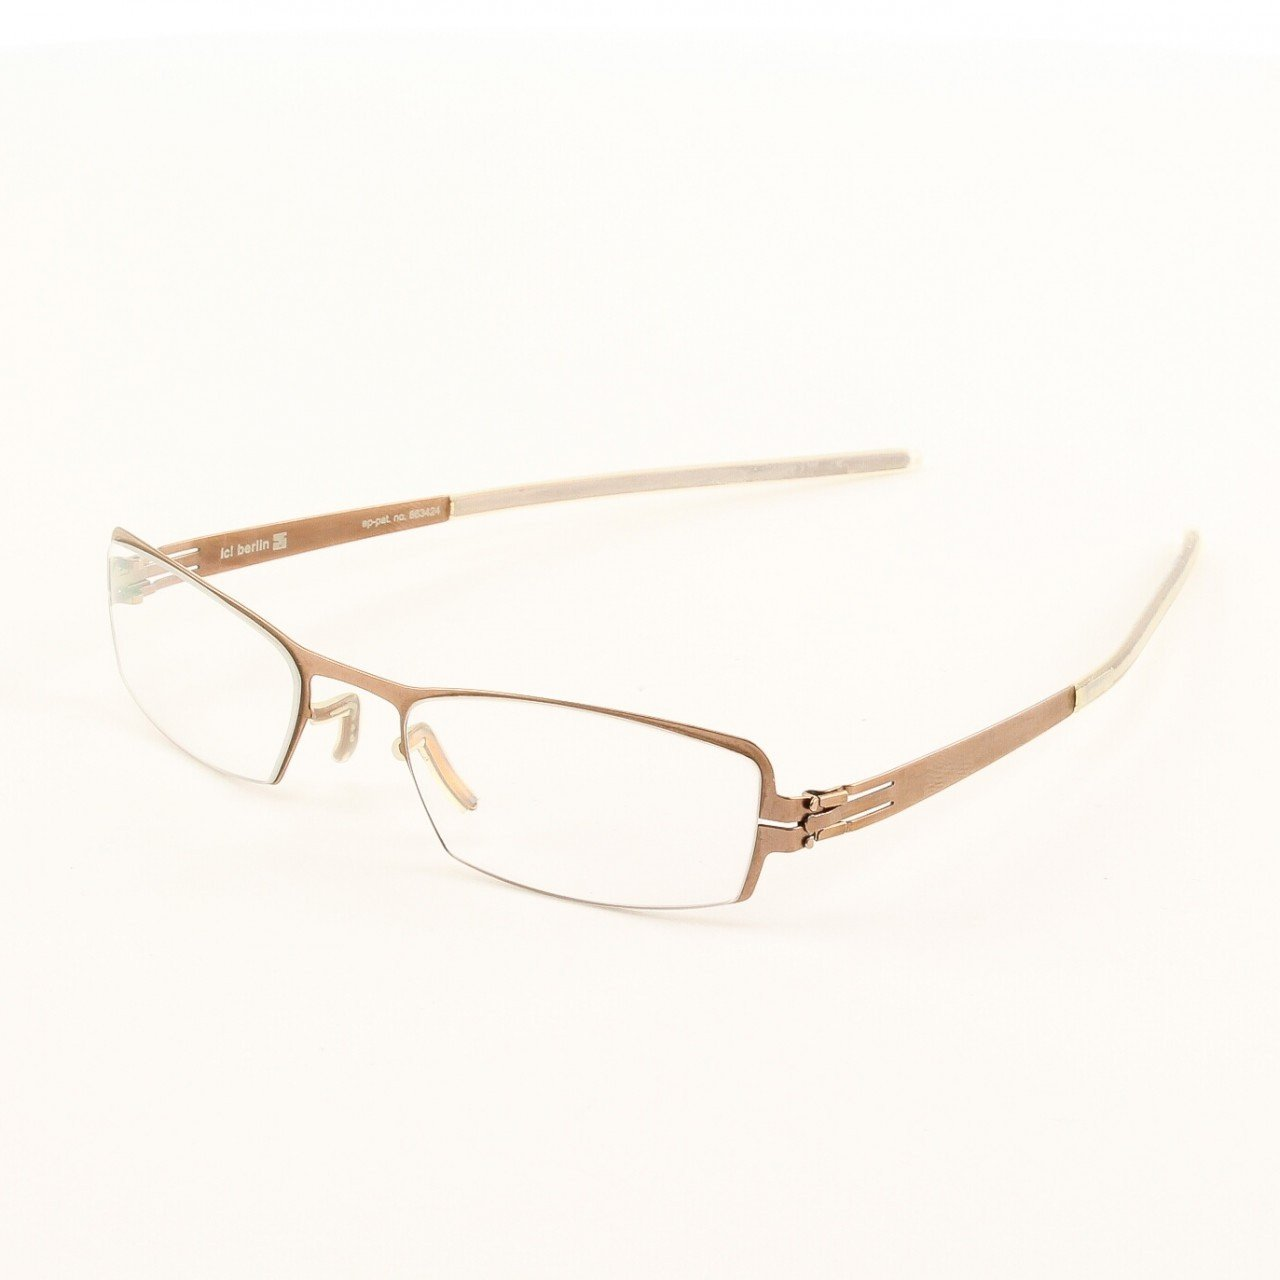 ic! Berlin Ike Eyeglasses Col. Copper with Clear Lenses